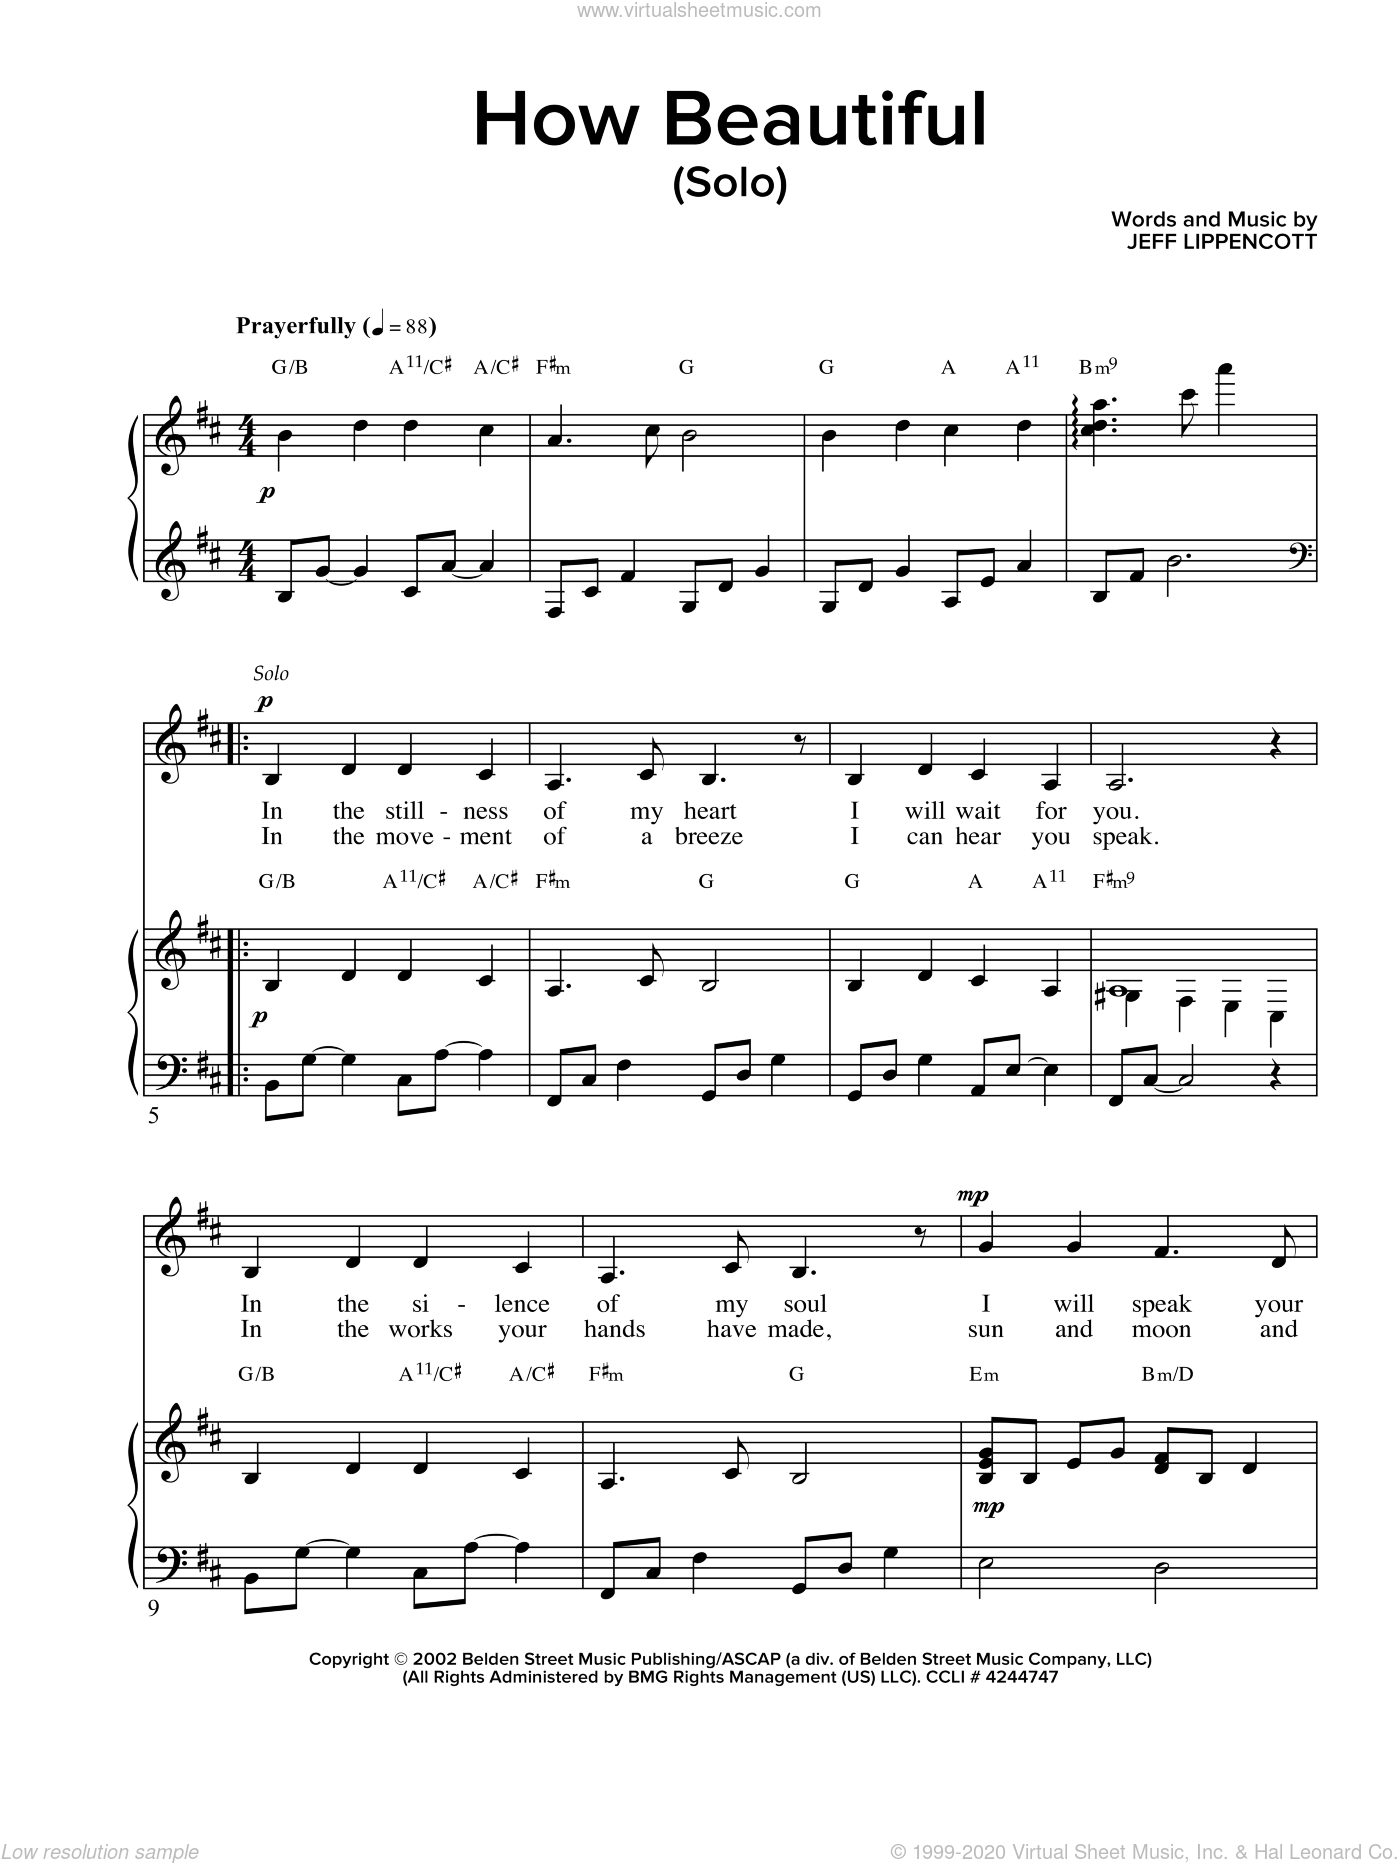 How Beautiful sheet music for voice and piano by Jeff Lippincott, intermediate skill level